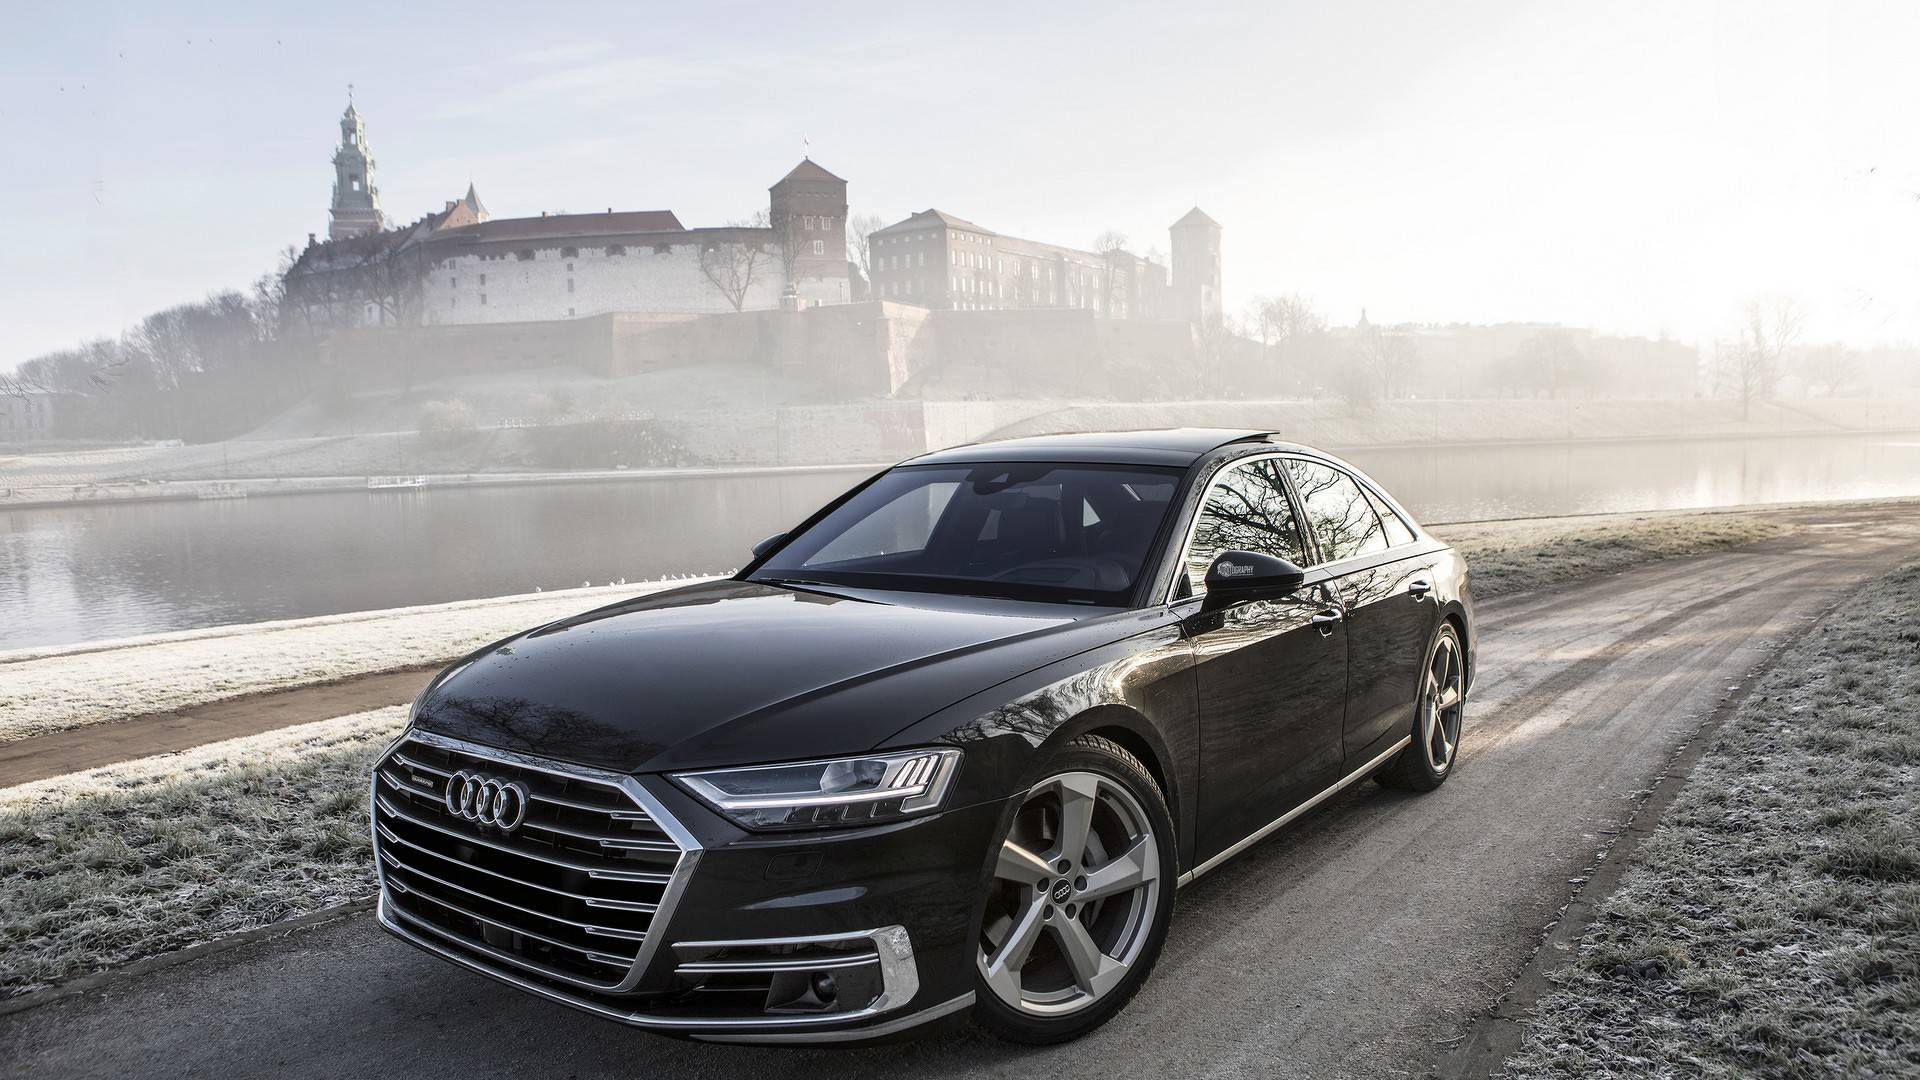 Find Out How Quick The V GasPowered New Audi A Is - Audi a8